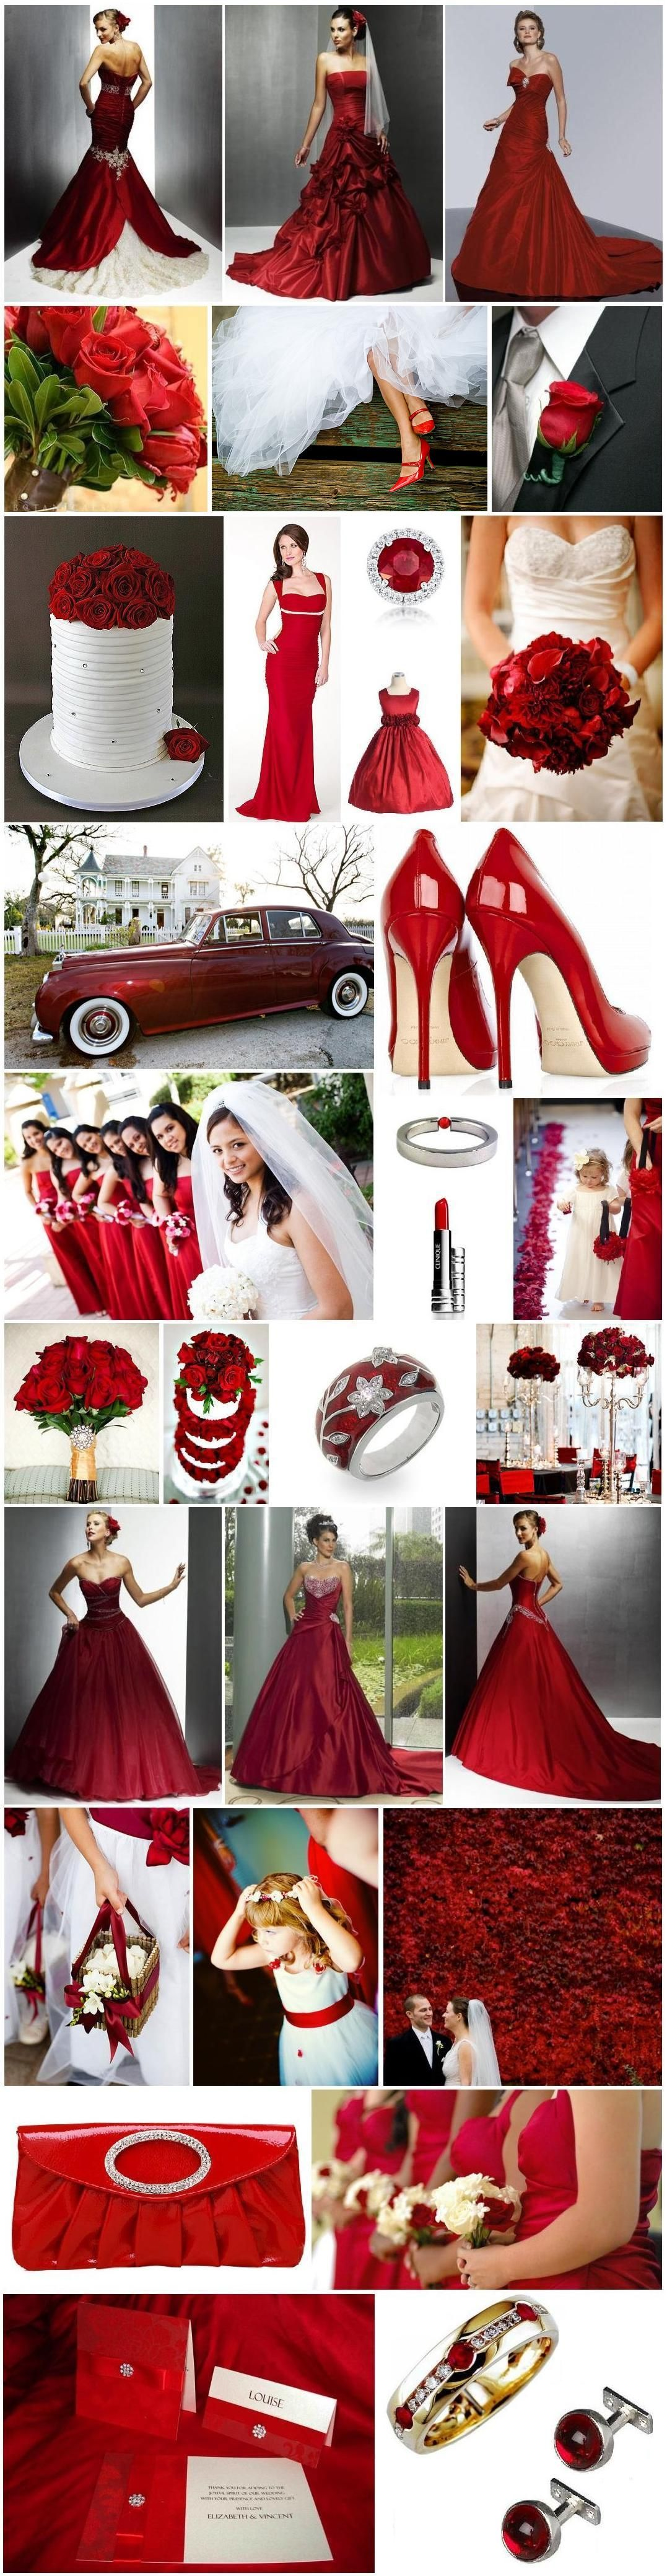 Wedding decoration ideas red and white  Splash of Red  Inspiration Blog and Wedding